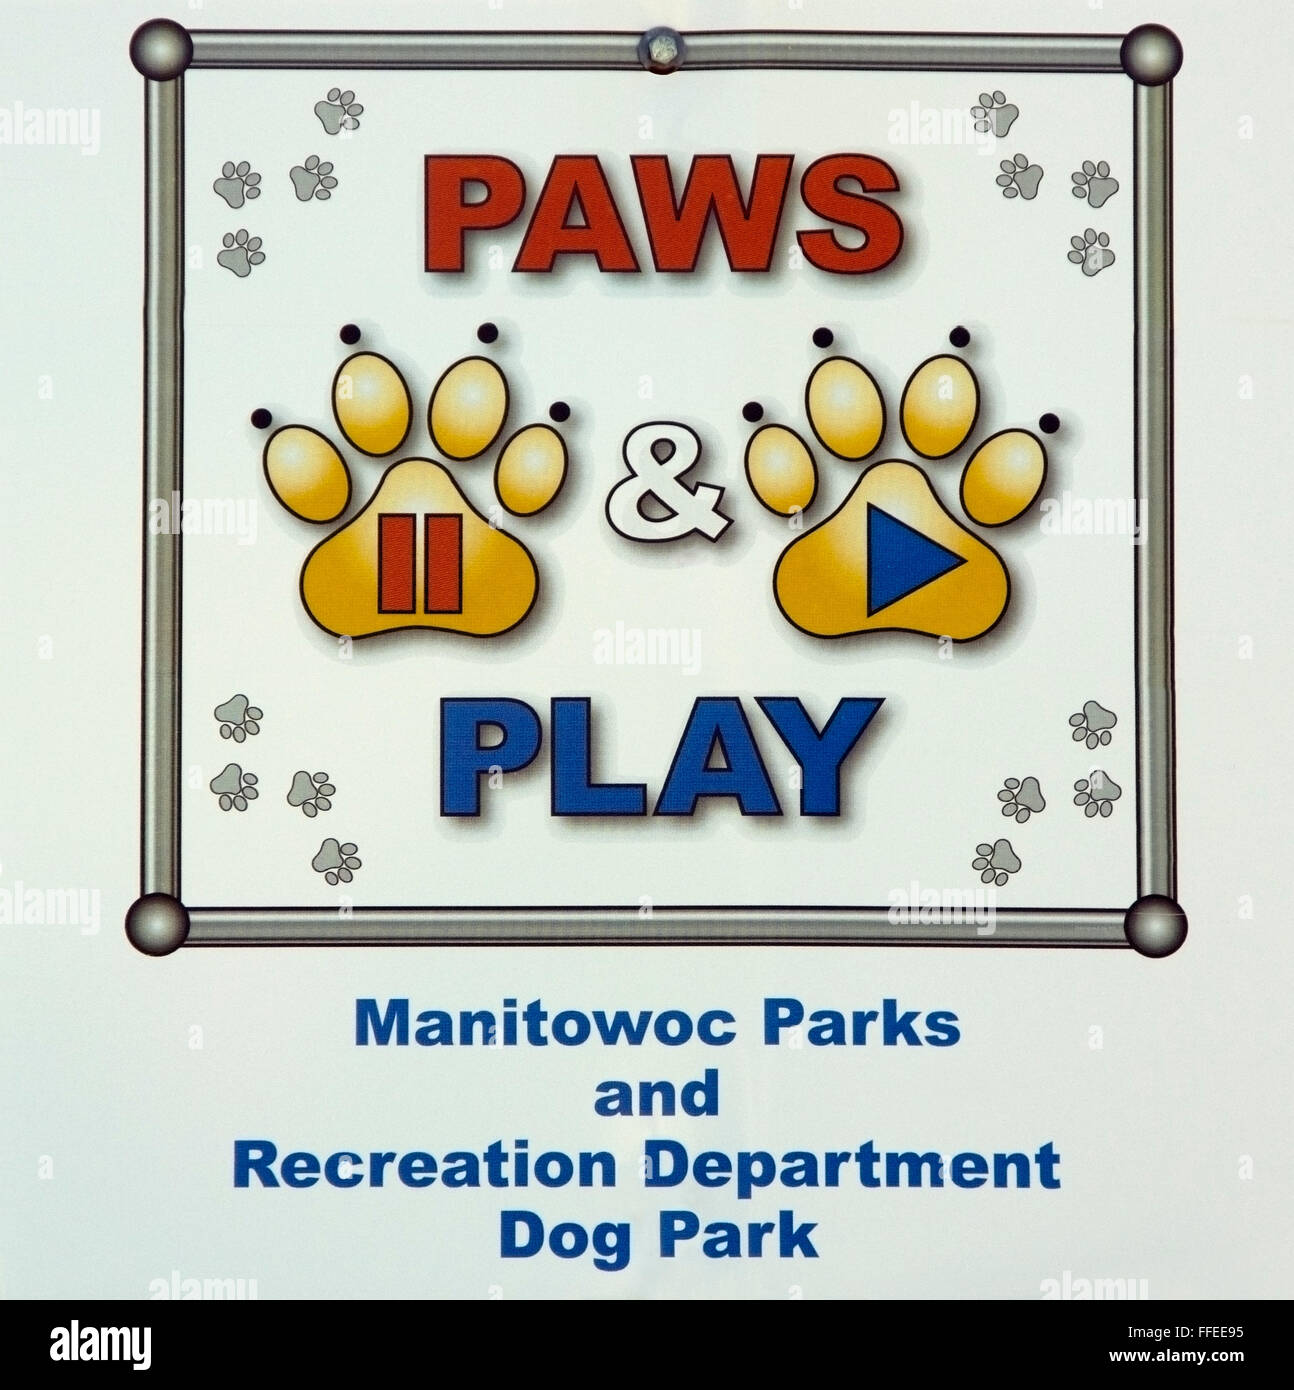 Paws and Play Dog Park sign Manitowoc Wisconsin - Stock Image